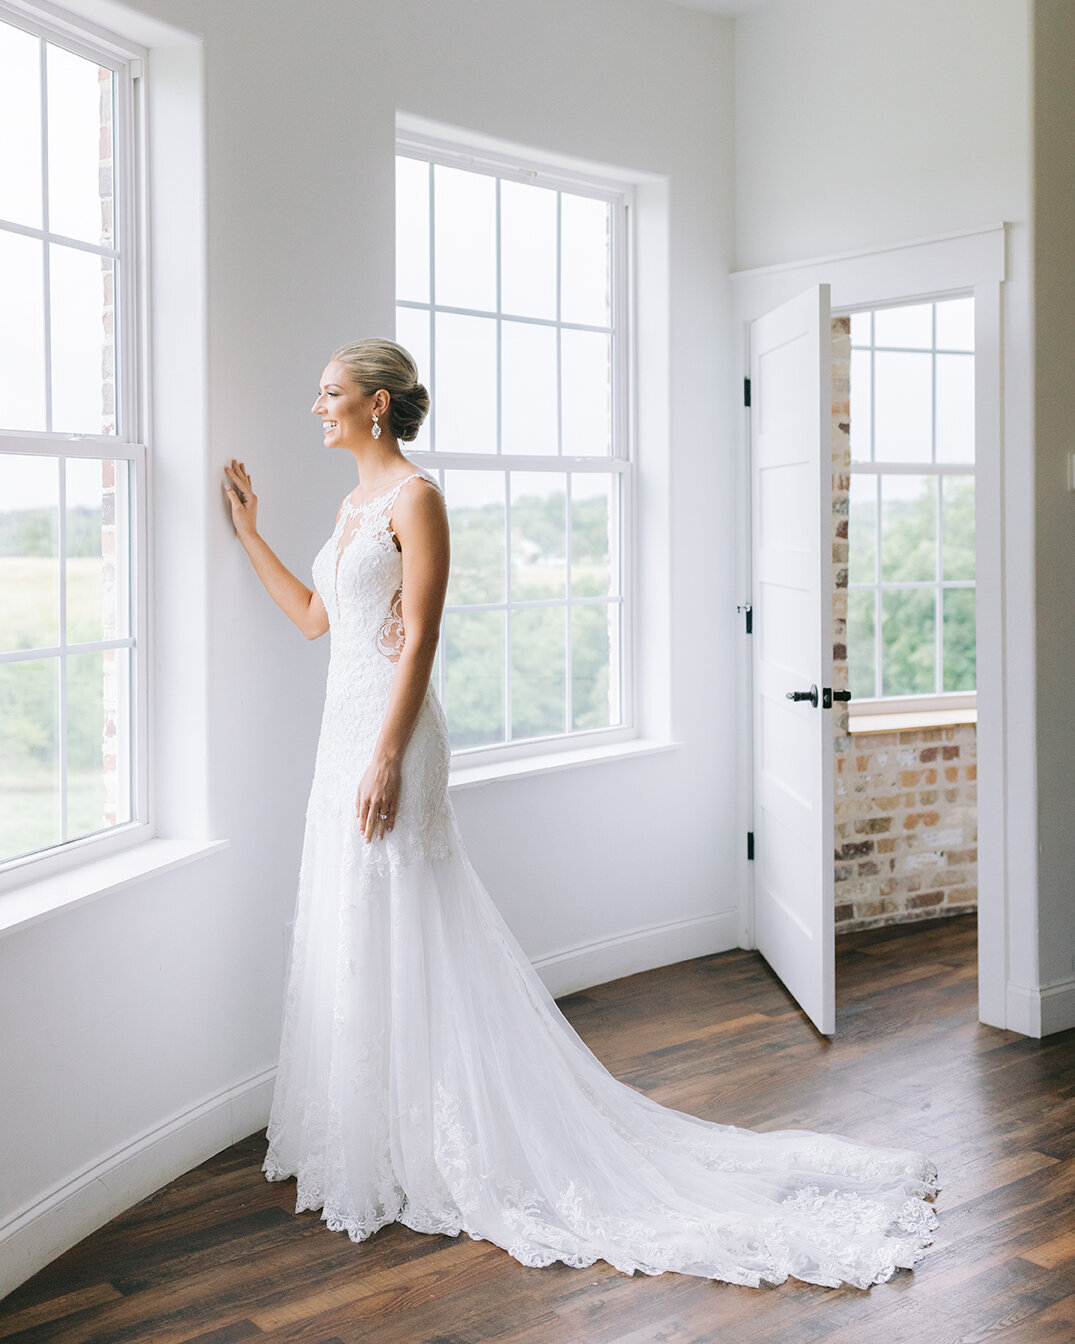 Rustic-Grace-Estate-Wedding-Dallas-Photographer